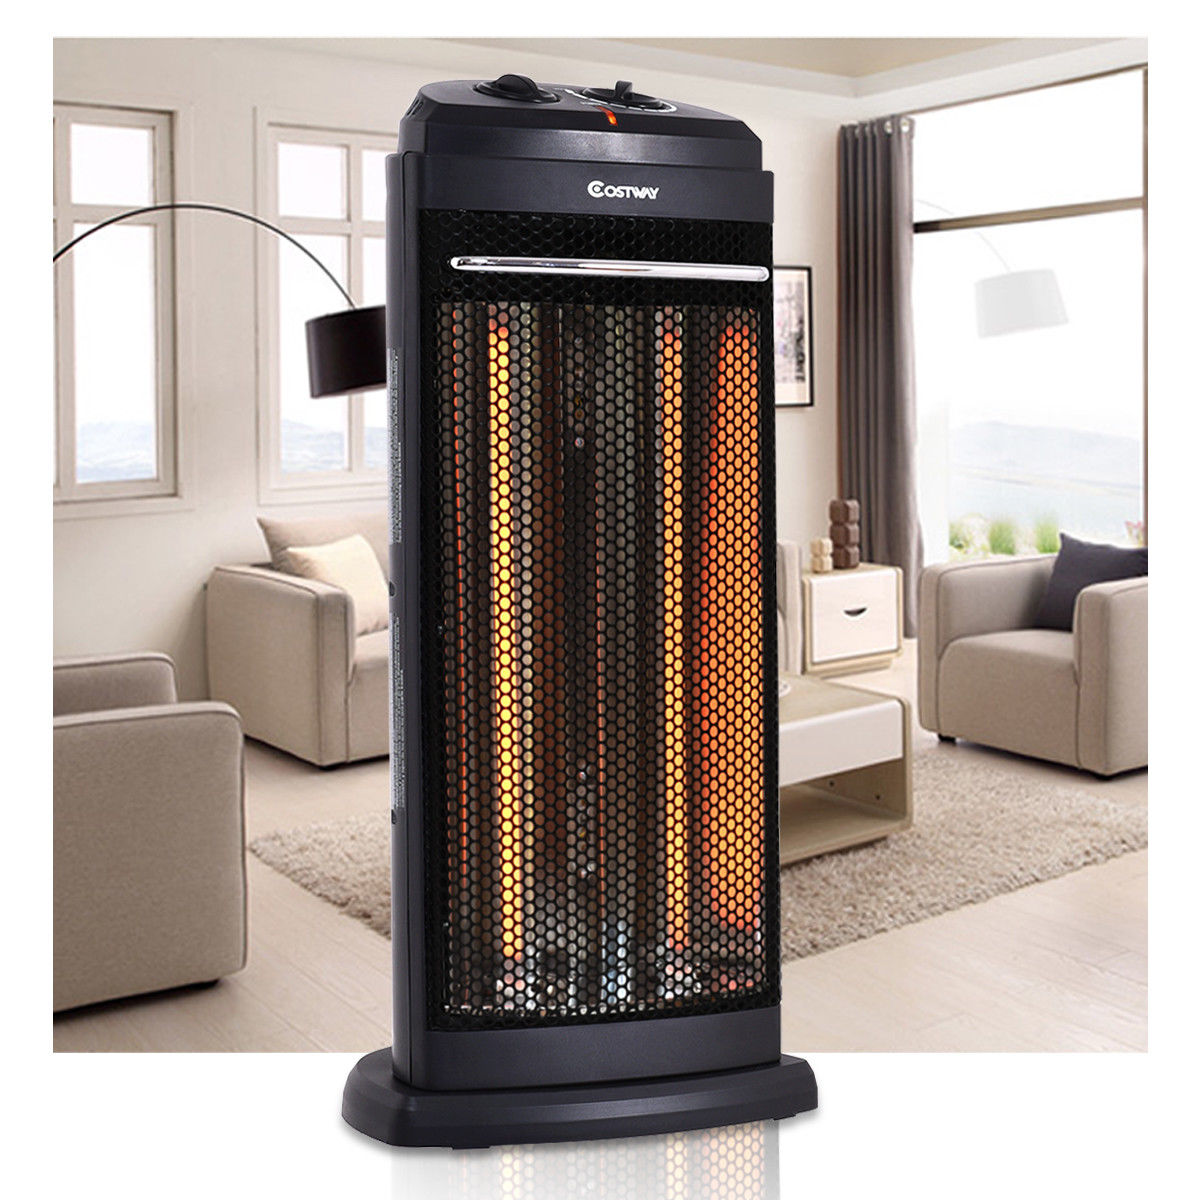 Costway Infrared Electric Quartz Heater Living Room Space Heating Radiant Fire Tower by Costway